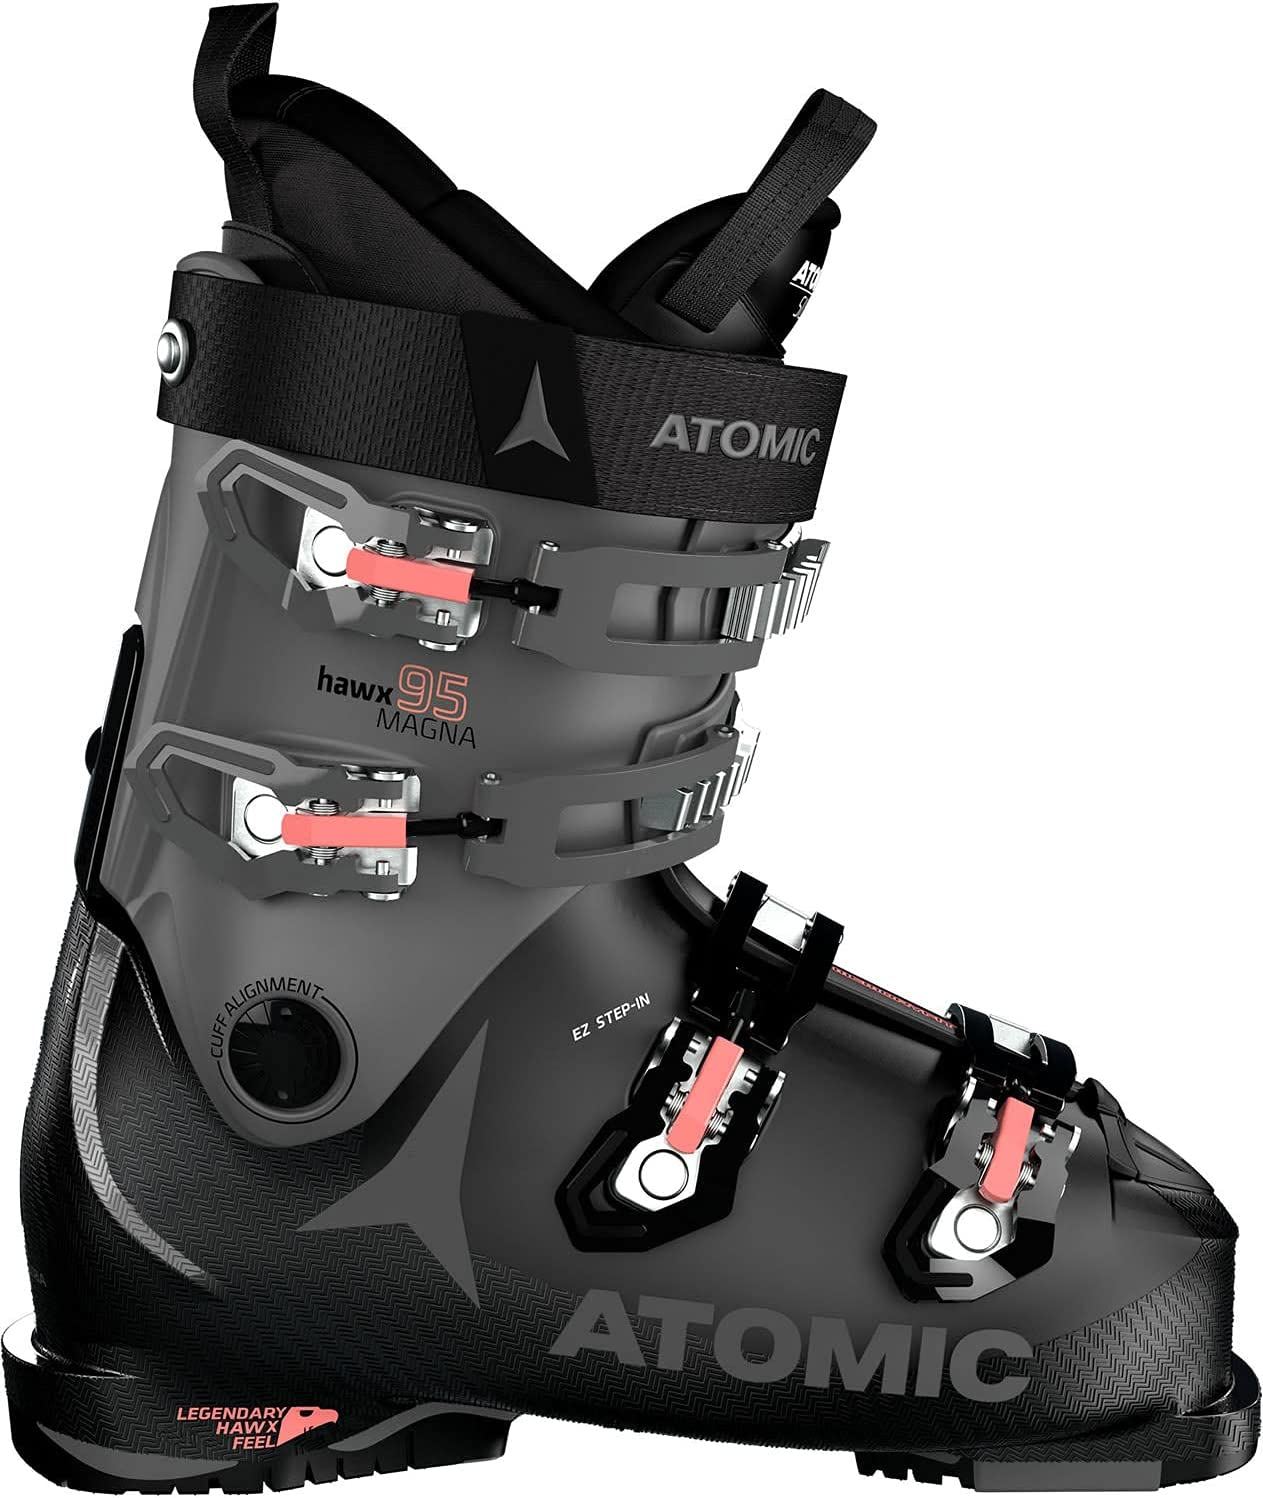 Atomic HAWX Magna Regular discount 95 Limited price Womens S Boots Ski